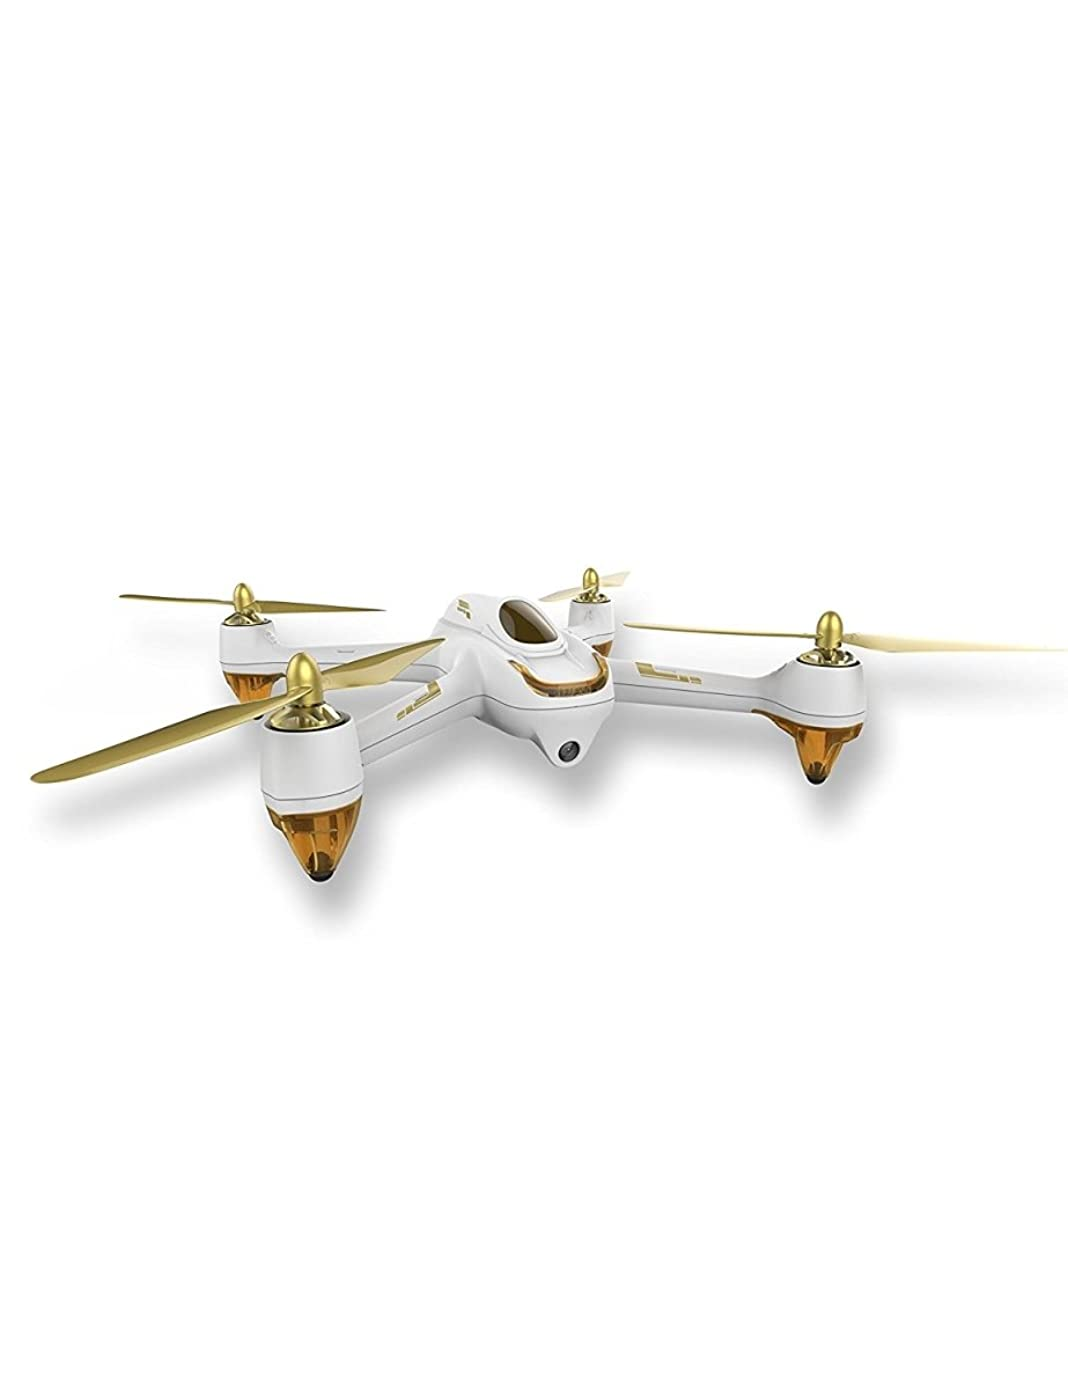 RC Quadcopter RTF (Hubsan H501S X4) - 5.8G FPV Brushless With 1080P HD Camera GPS (Version: Professional-Color:White and Gold-Mode:Switch)